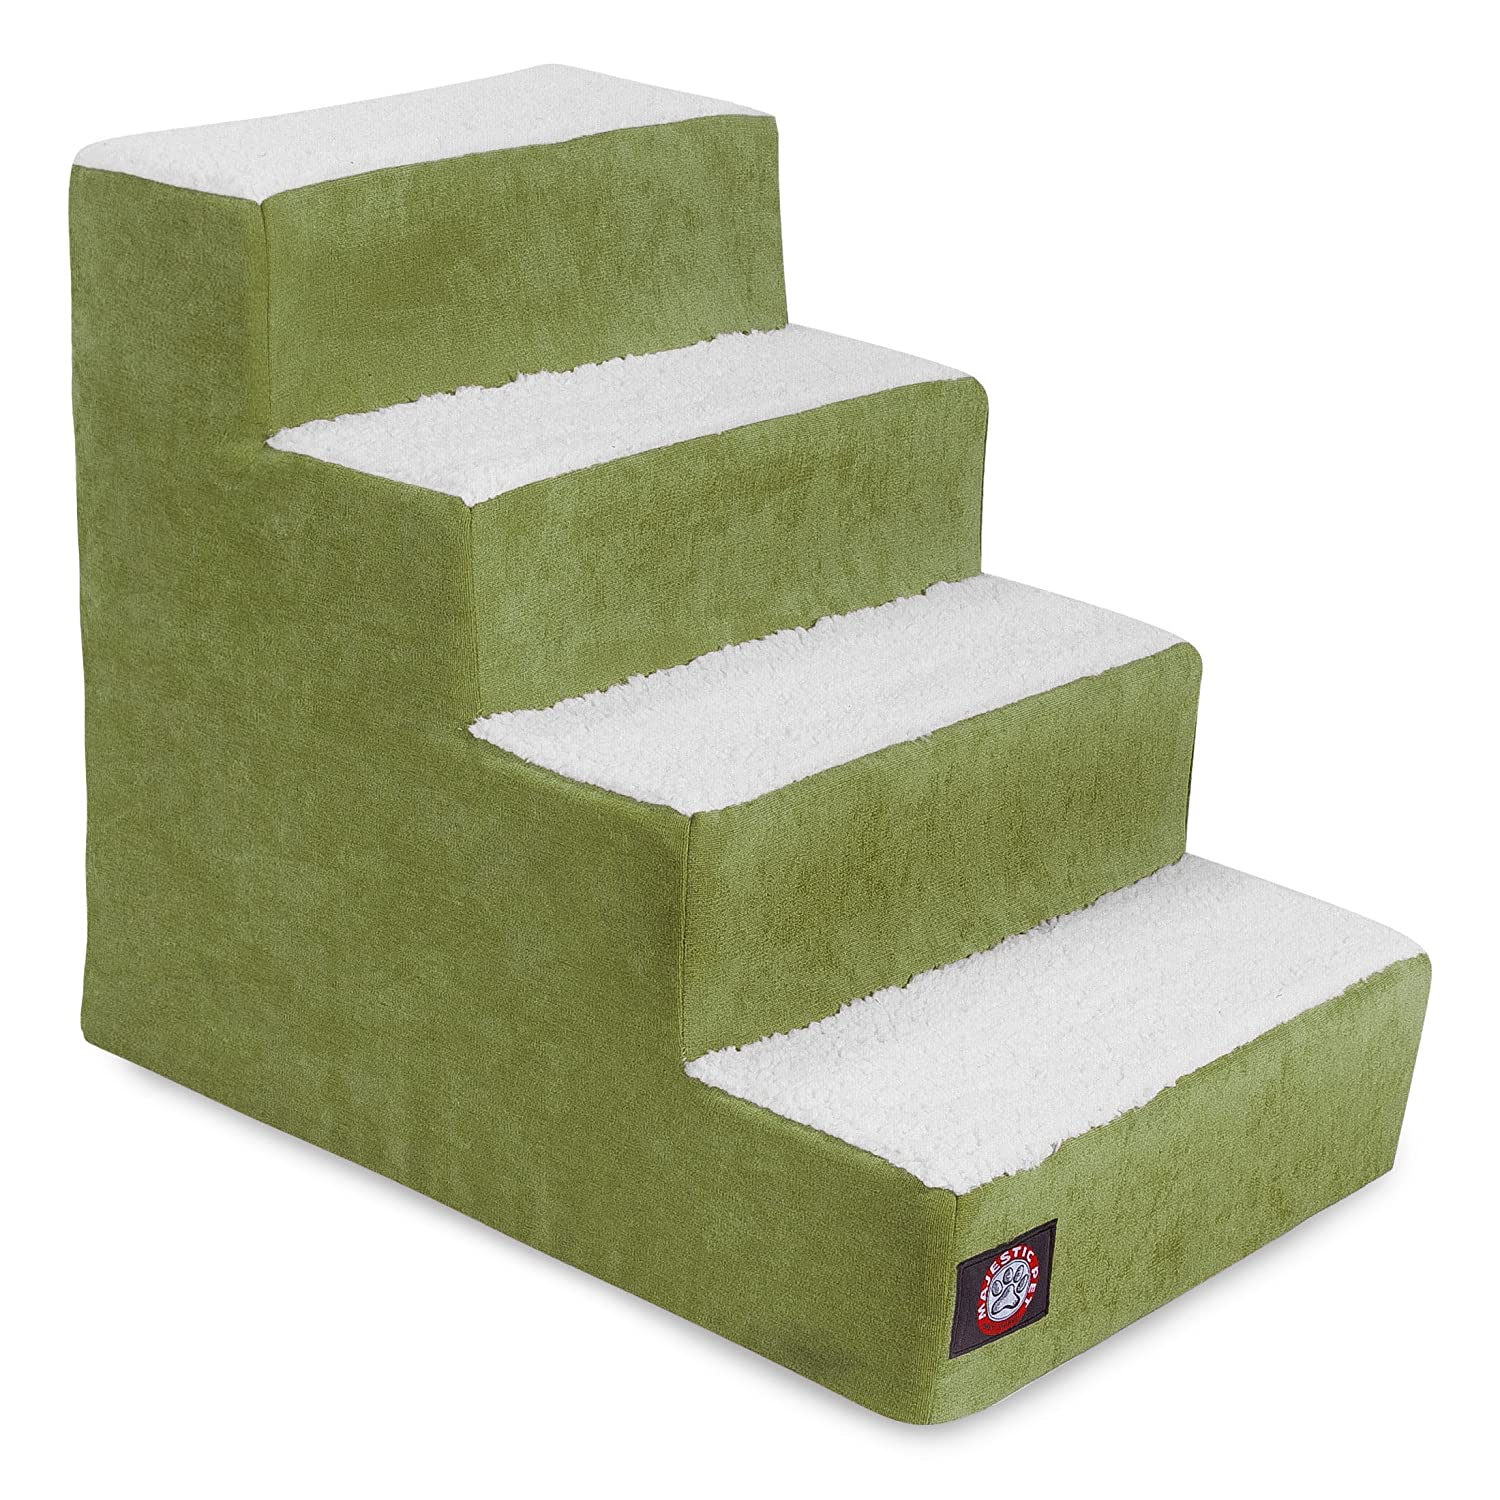 Majestic Pet 4 Step Portable Pet Stairs Products Villa Apple Steps for Cats and Dogs Green